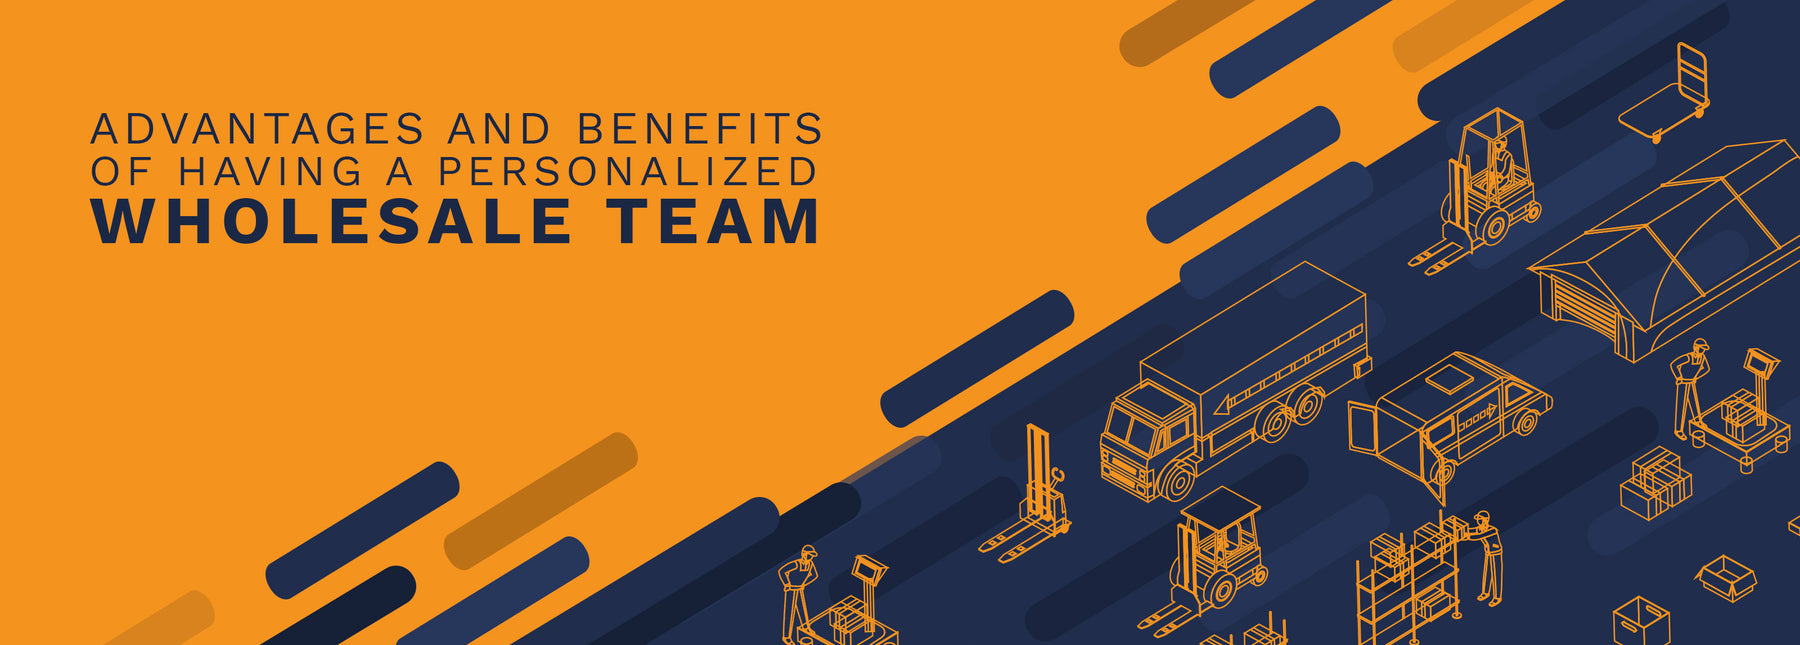 The advantages and benefits of having a personalized wholesale team